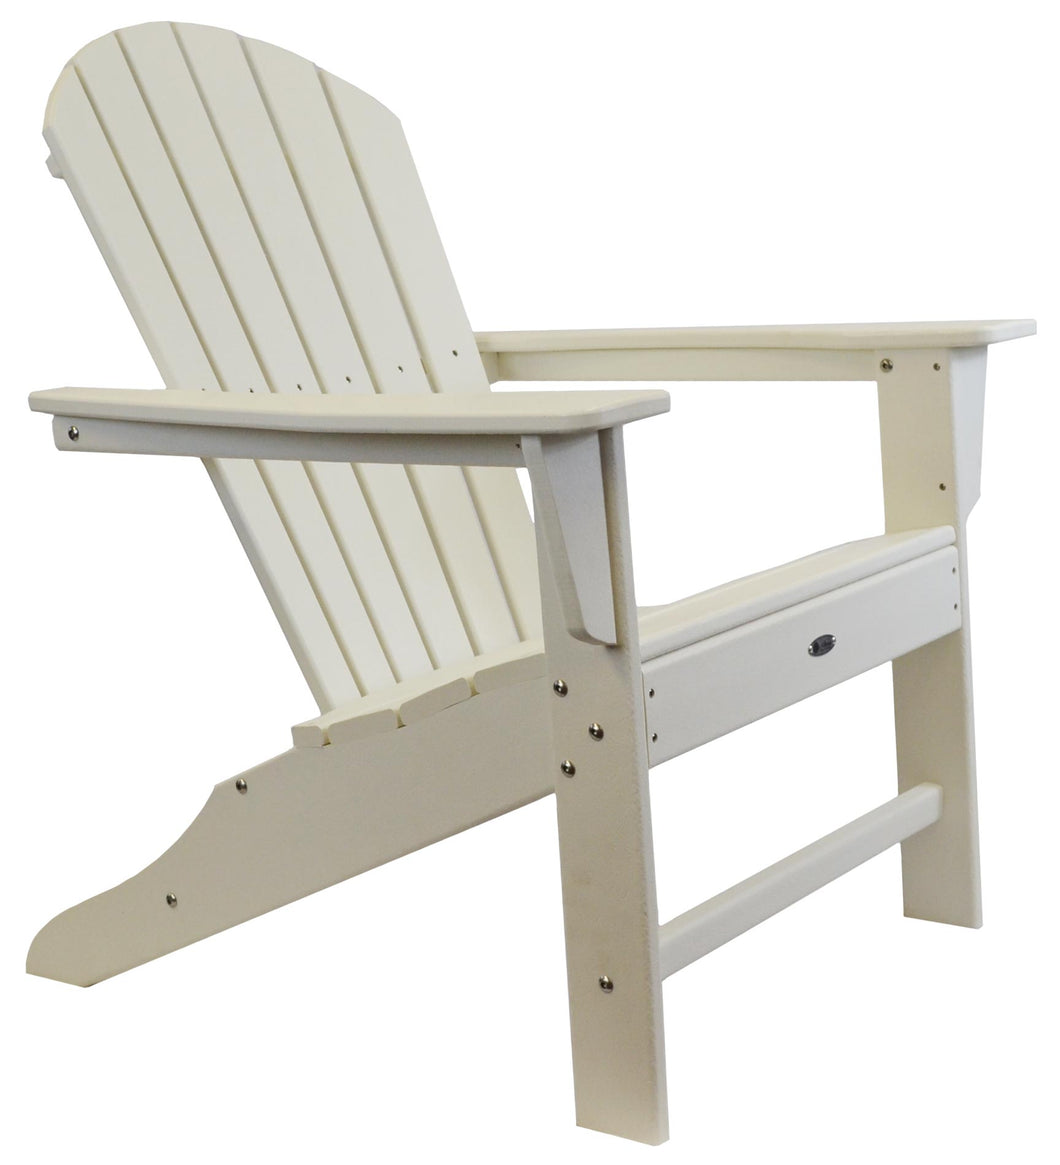 Atlas Patio Furniture - Surf City Poly Adirondack Chair - Color: White